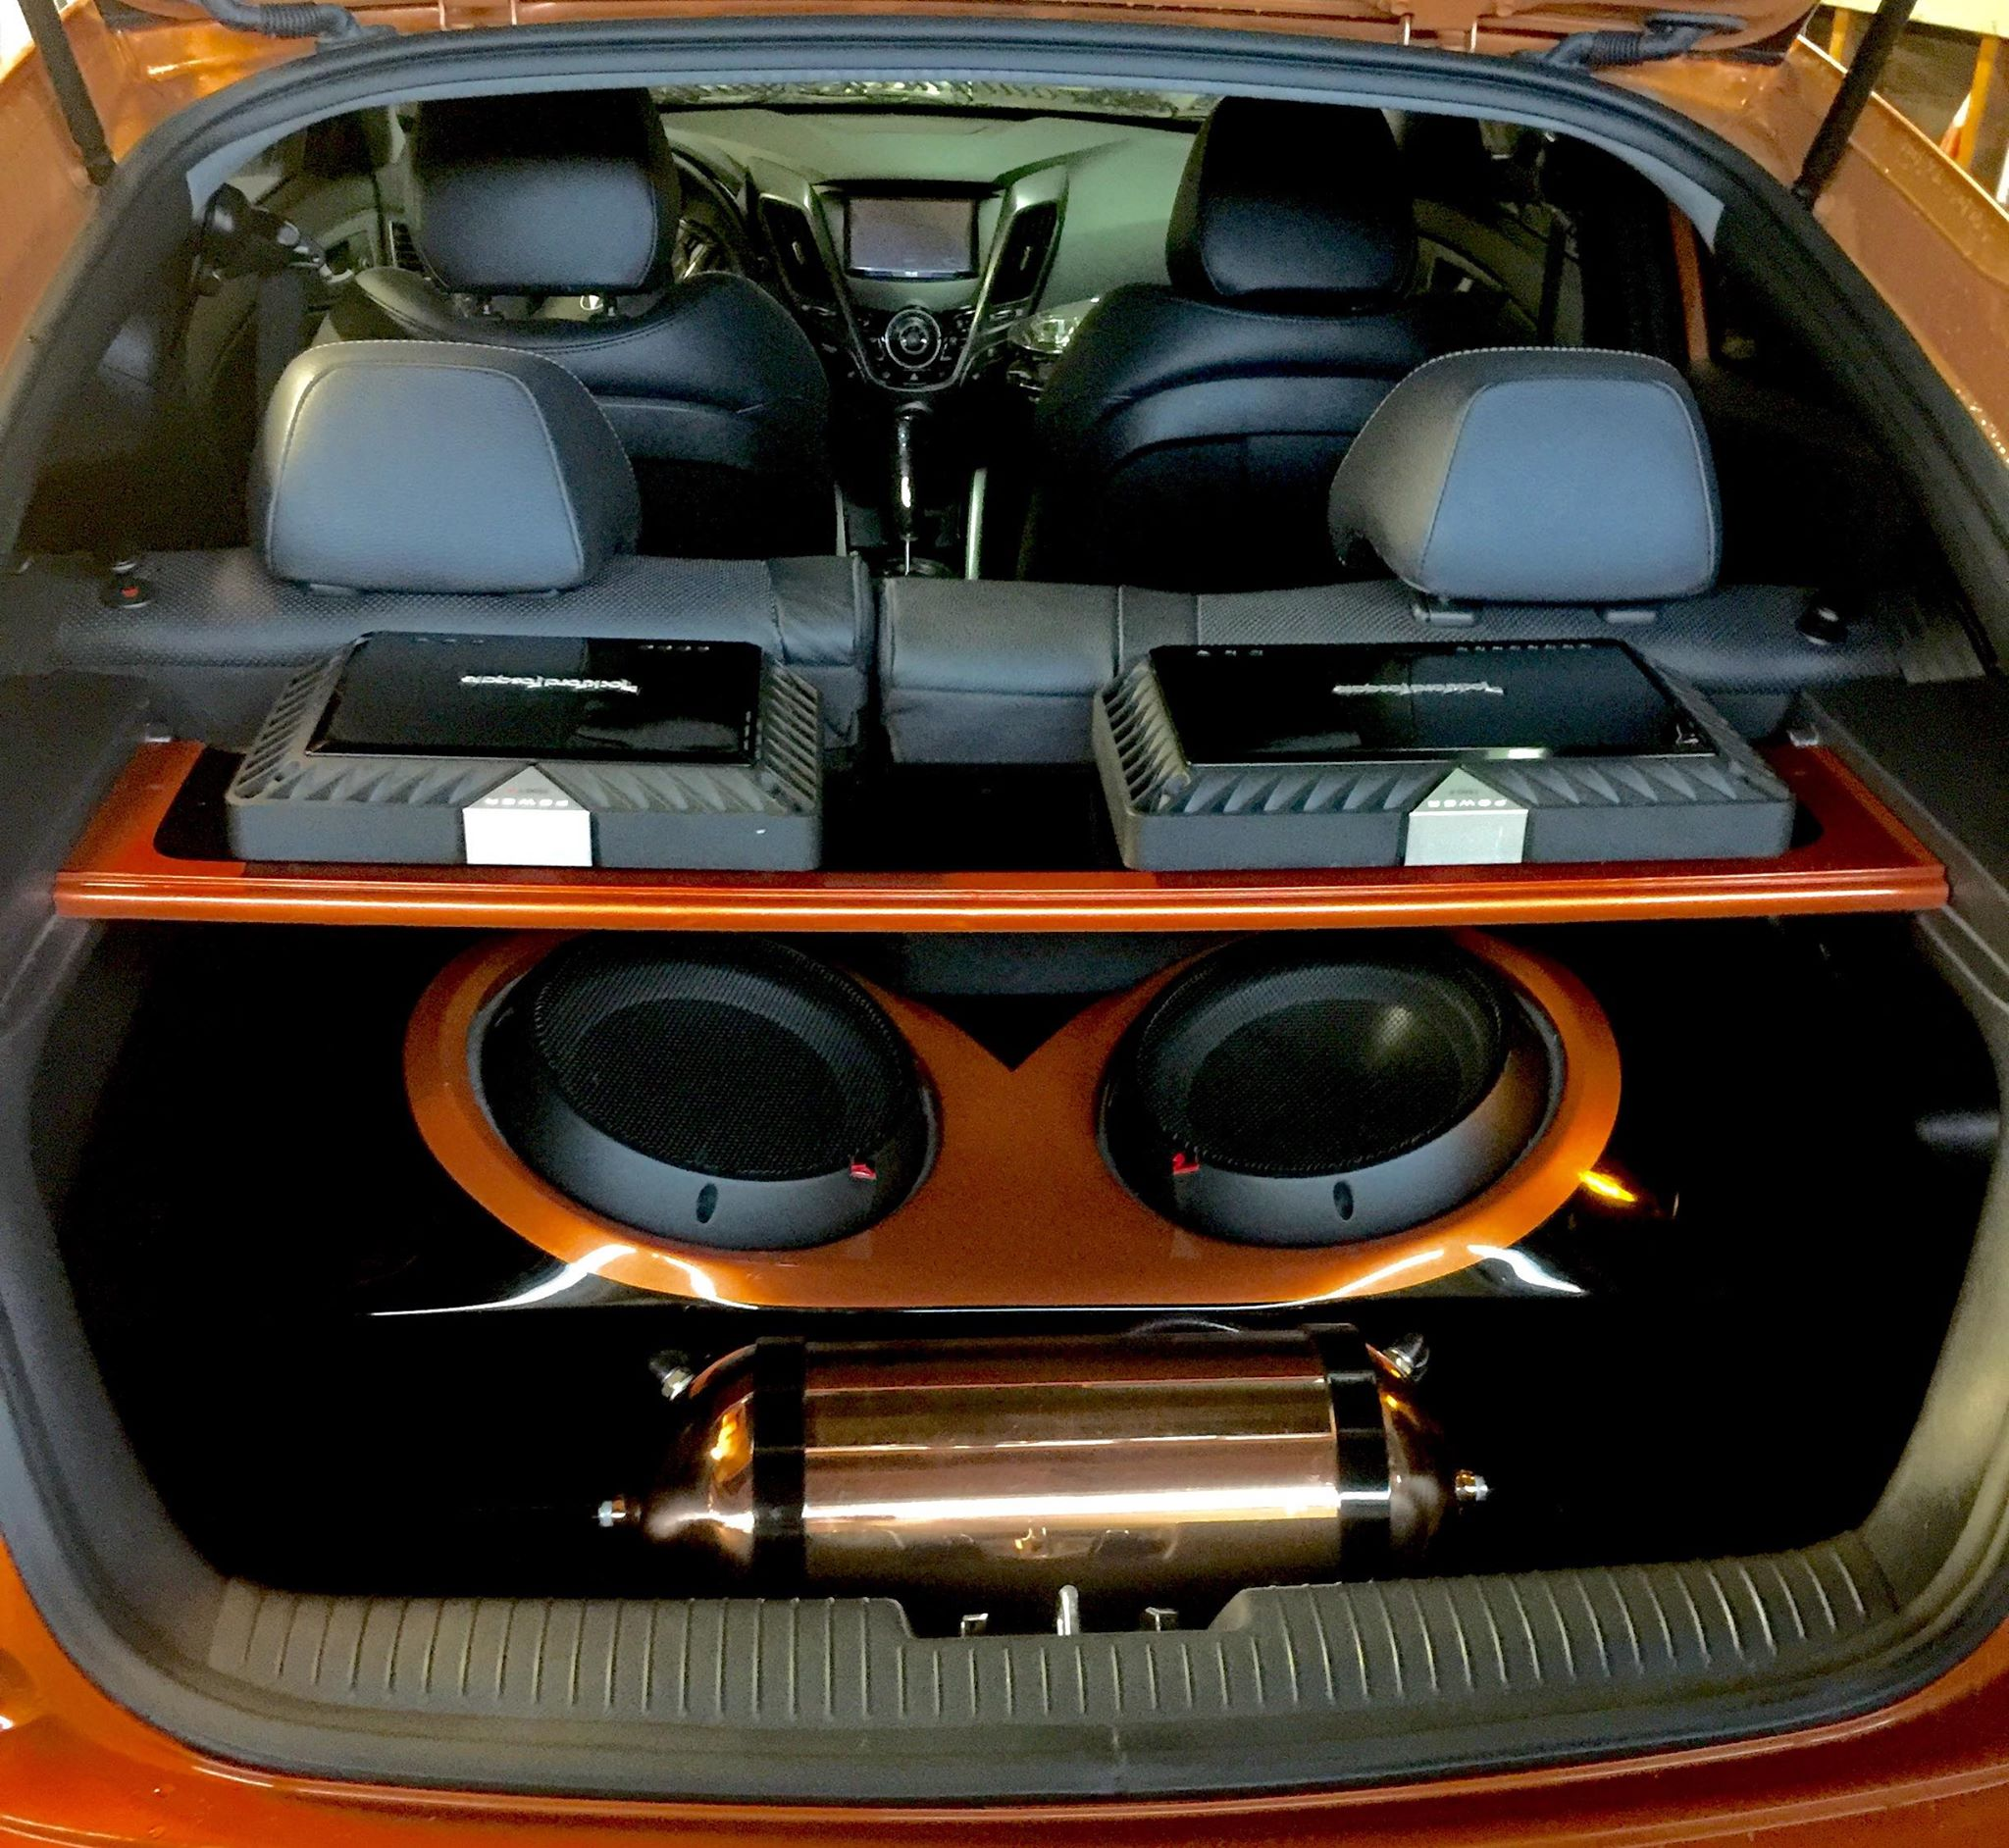 25 Installation Rescue Infinite Auto Design Hyundai Veloster Car Audio Air Install pasmag